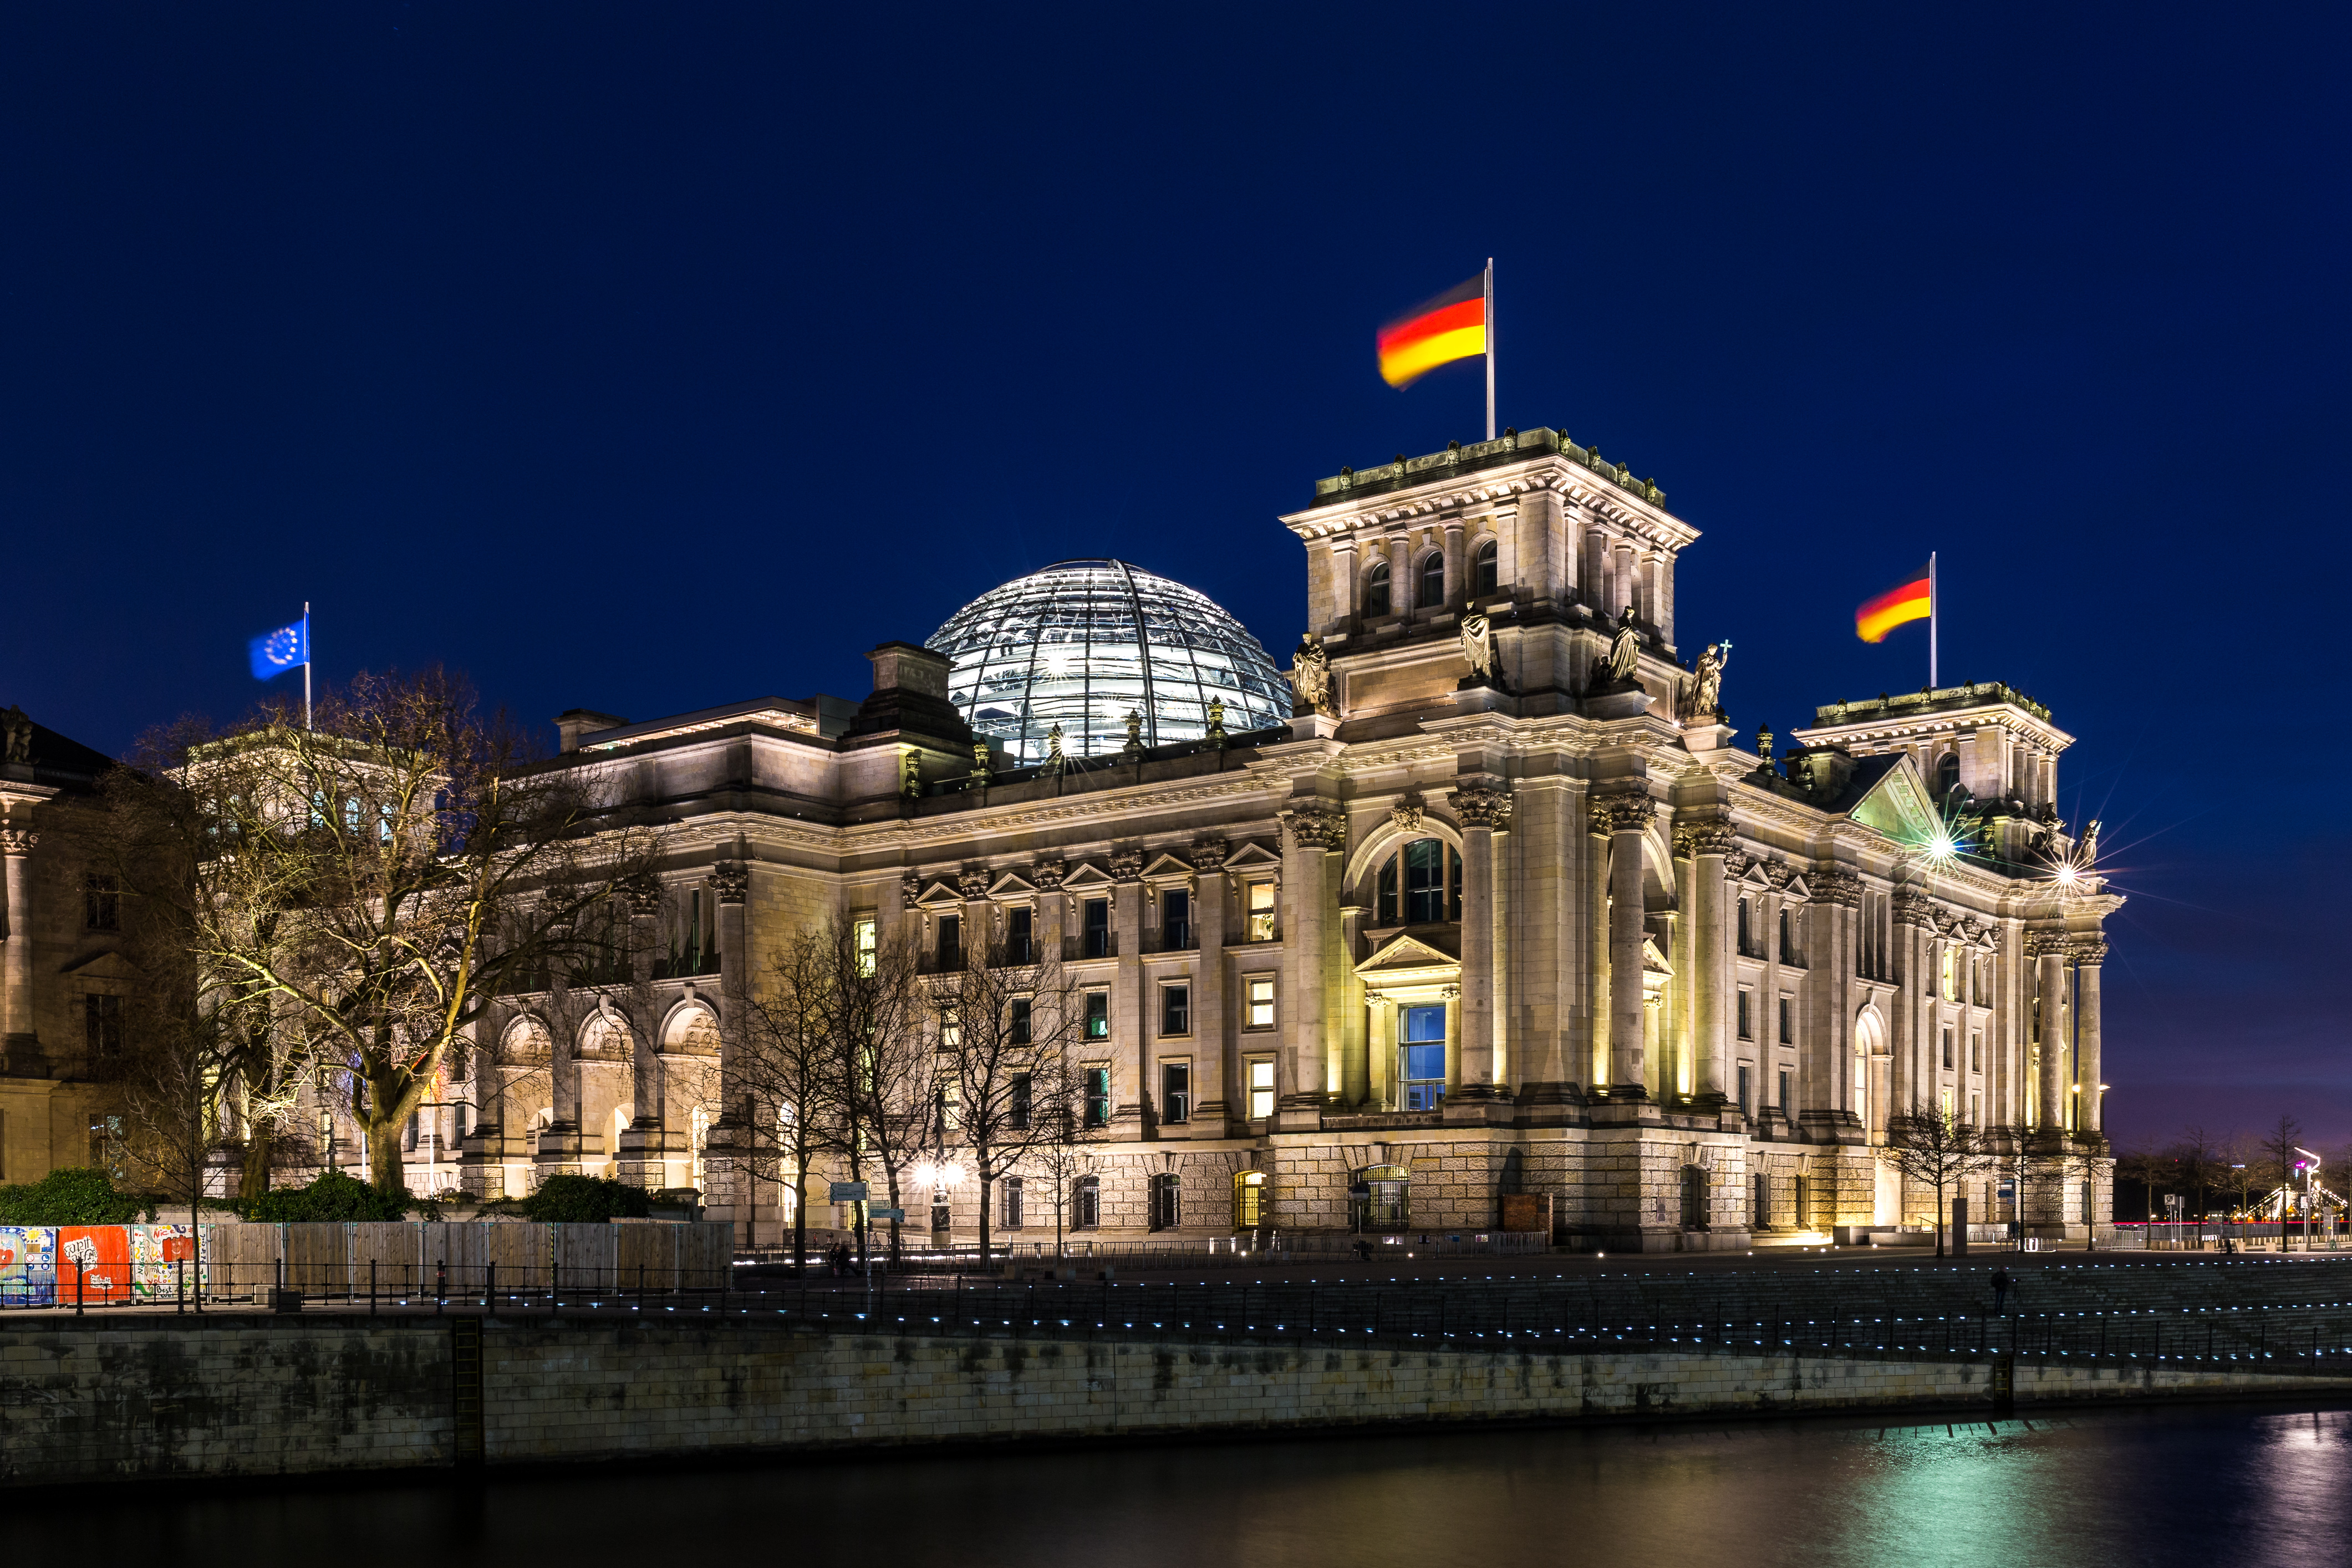 Find your transsexual love in Berlin